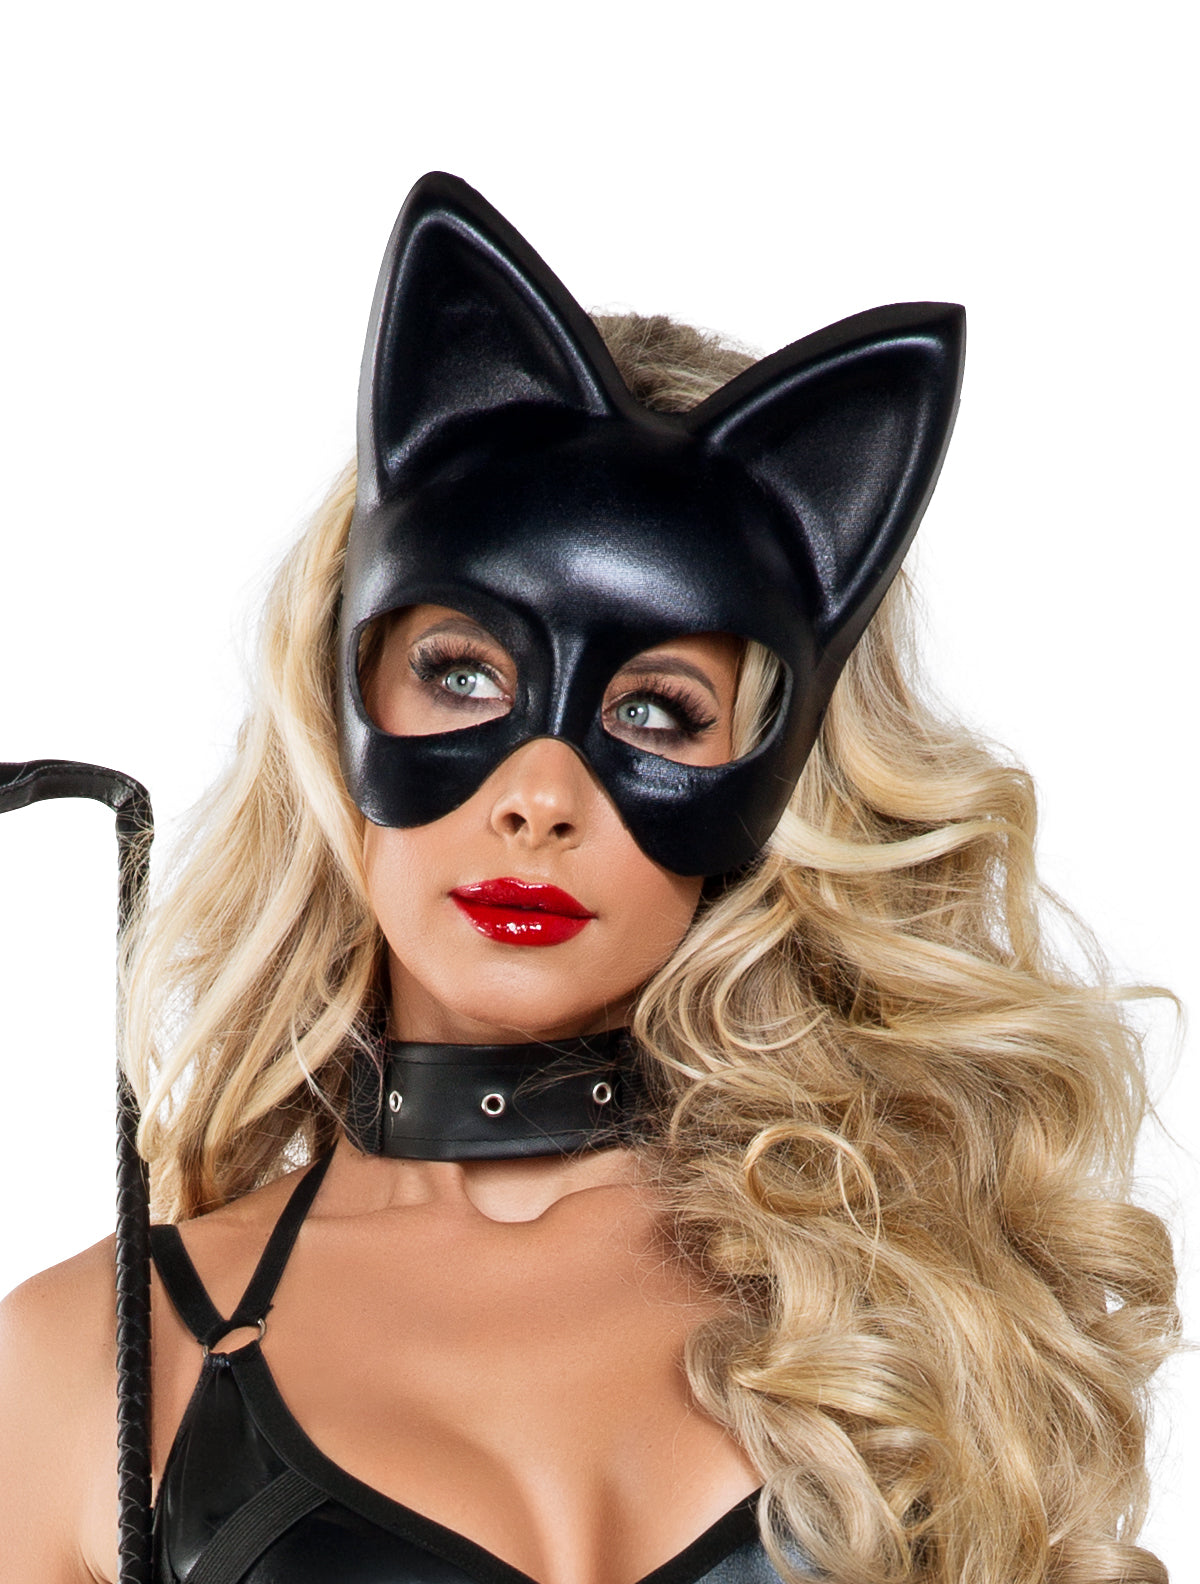 Starline Womenu0027s Full Cat Mask Roleplay Costume Accessory Womens Costume Accessories - Nastassy  sc 1 st  Nastassy & Starline Womenu0027s Full Cat Mask Roleplay Costume Accessory